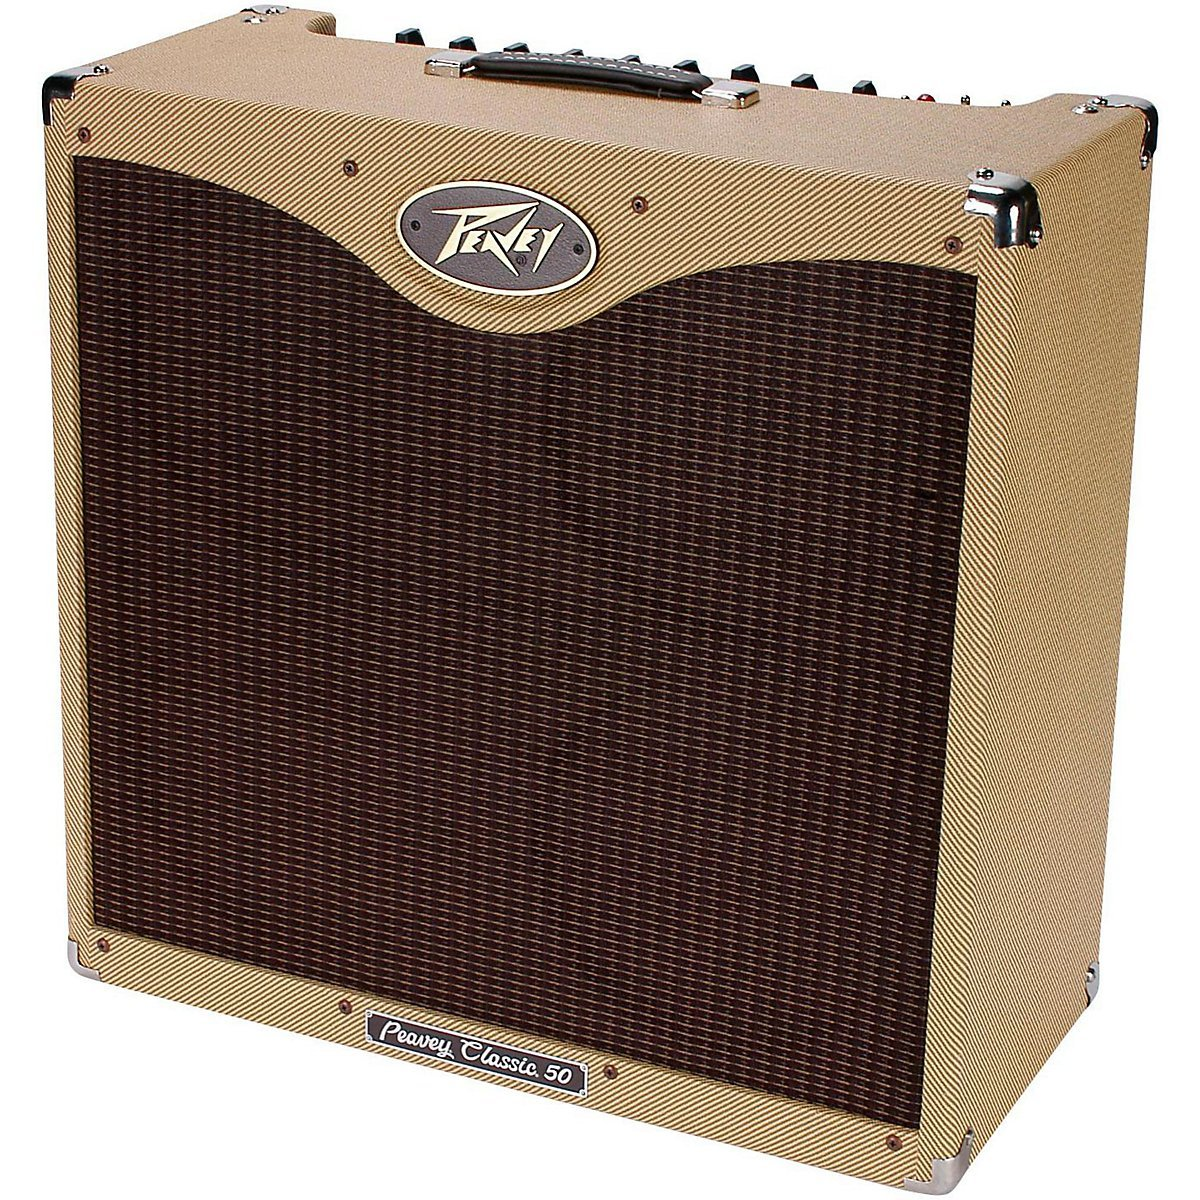 peavey classic 50 410 electric guitar combo amp 4 10 speaker mic stand cables 14367120202 ebay. Black Bedroom Furniture Sets. Home Design Ideas